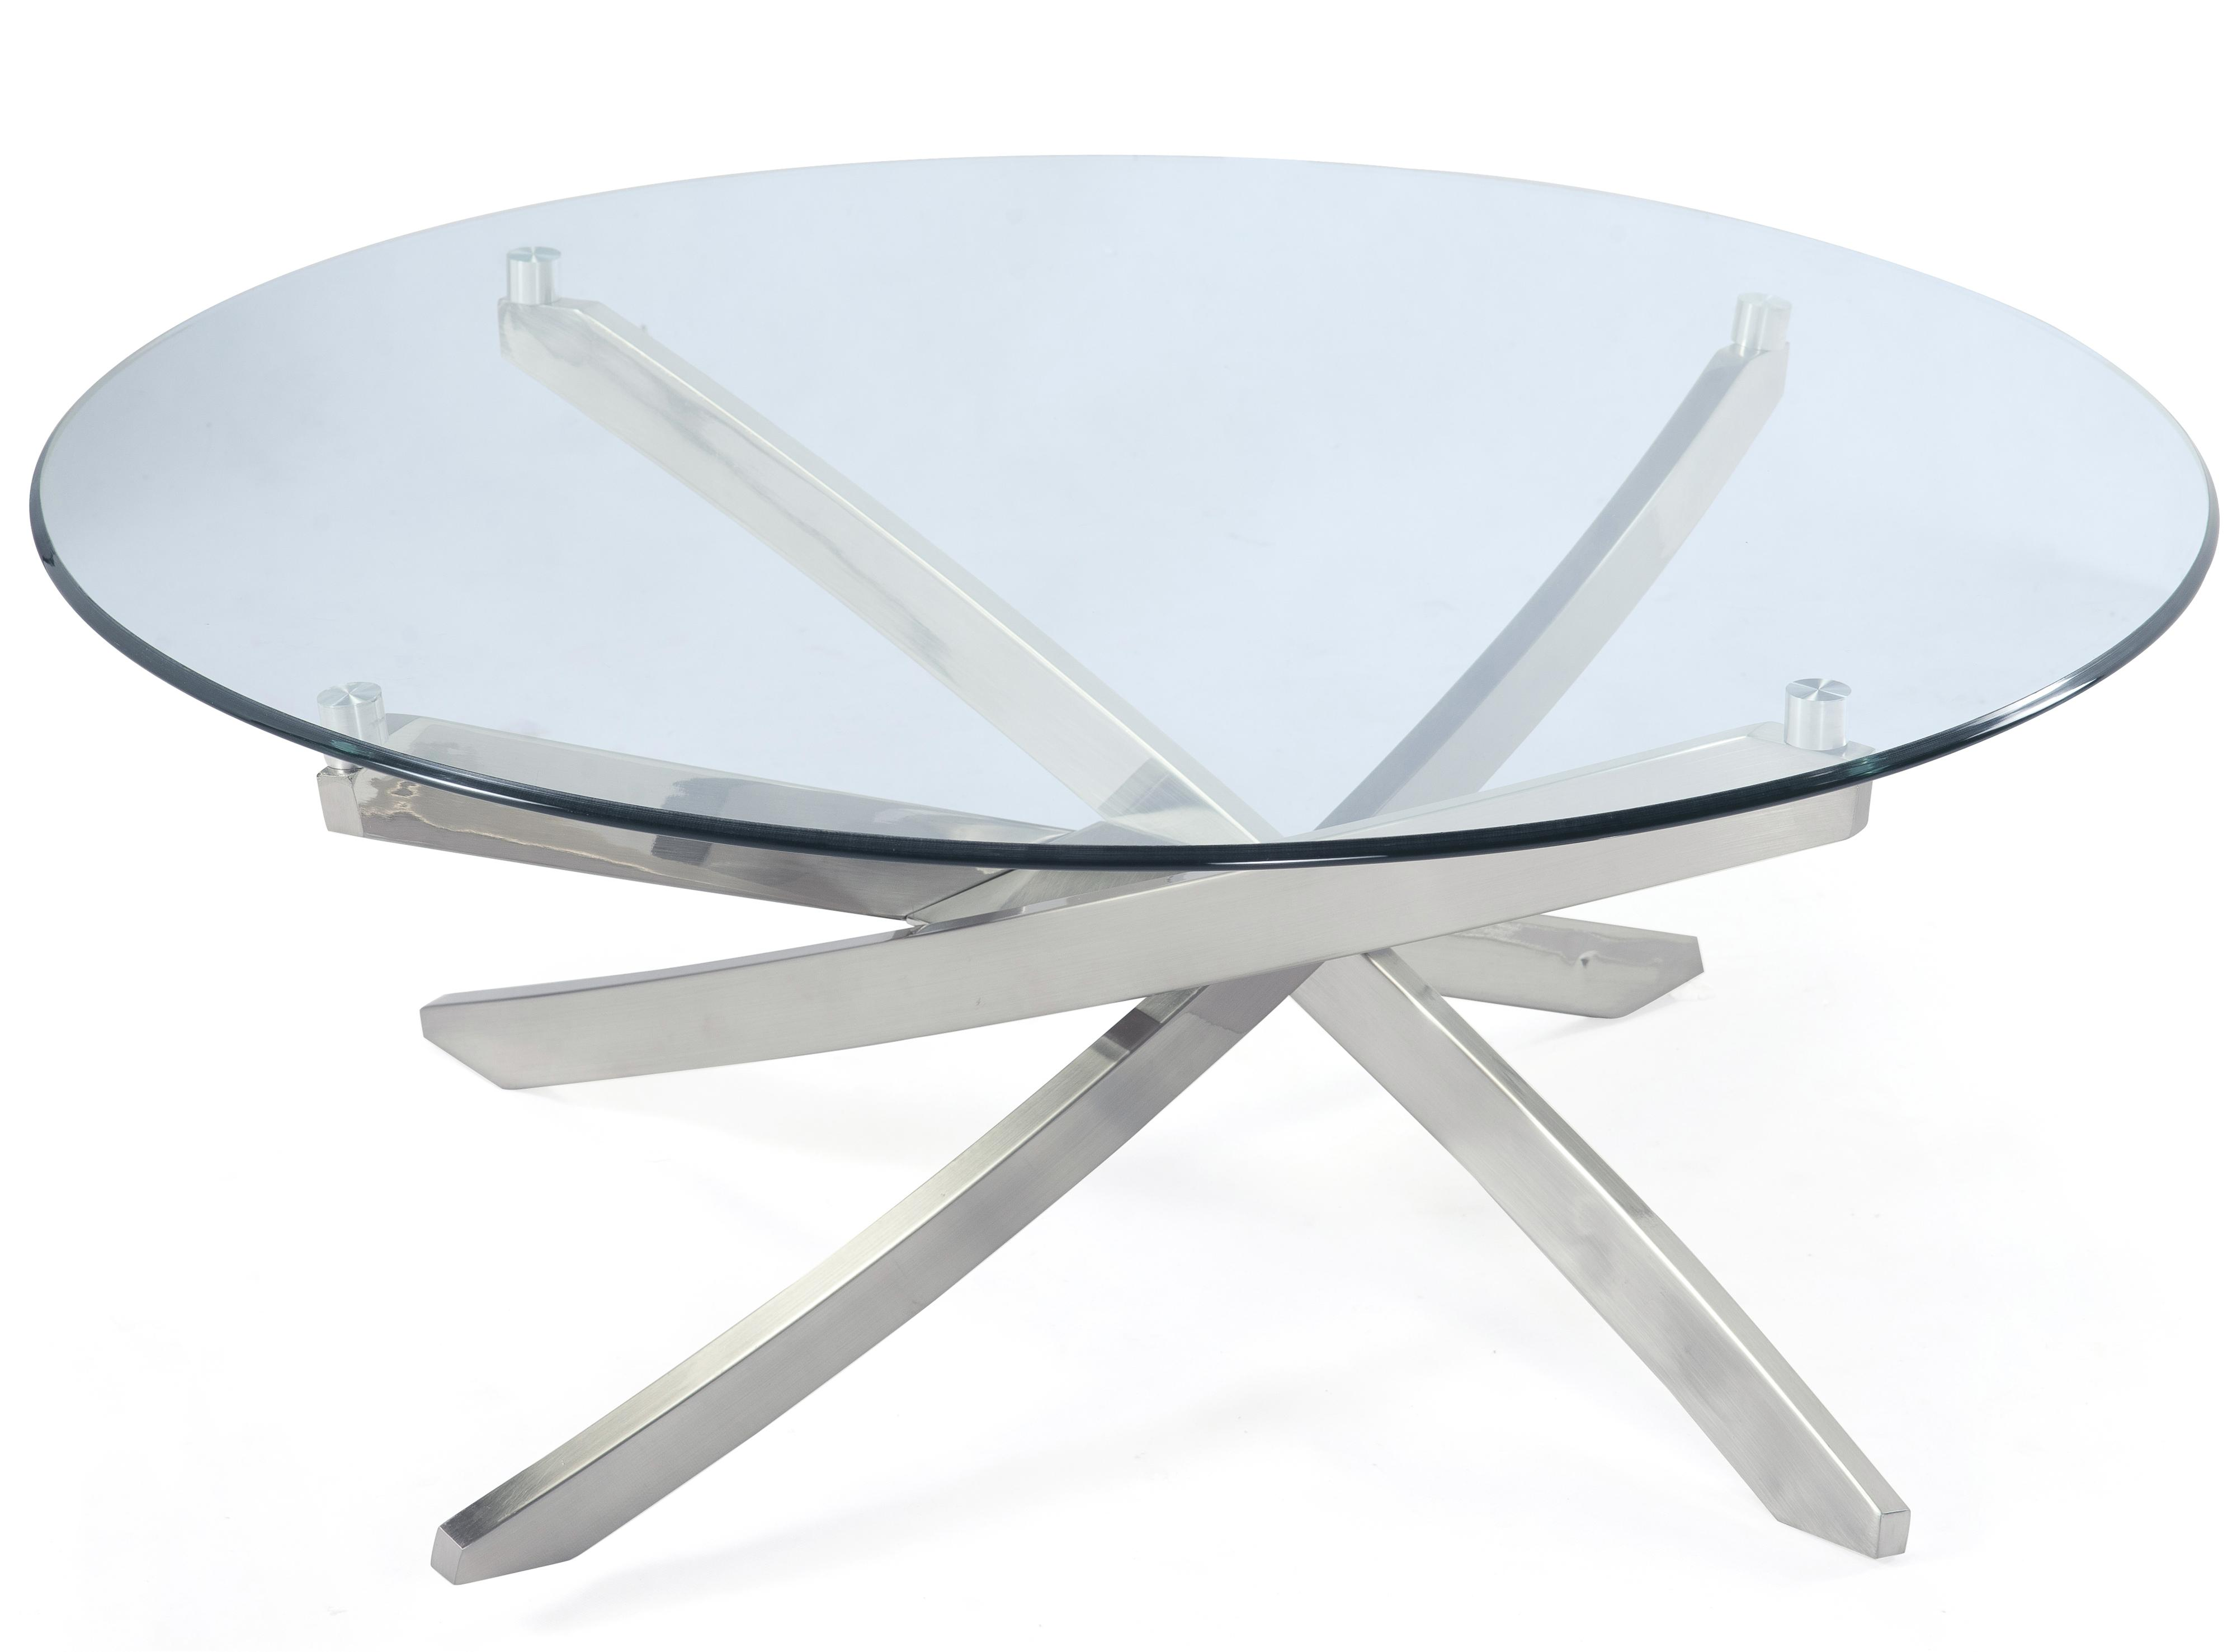 Round Cocktail Table with Strut Base and Tempered Glass Top